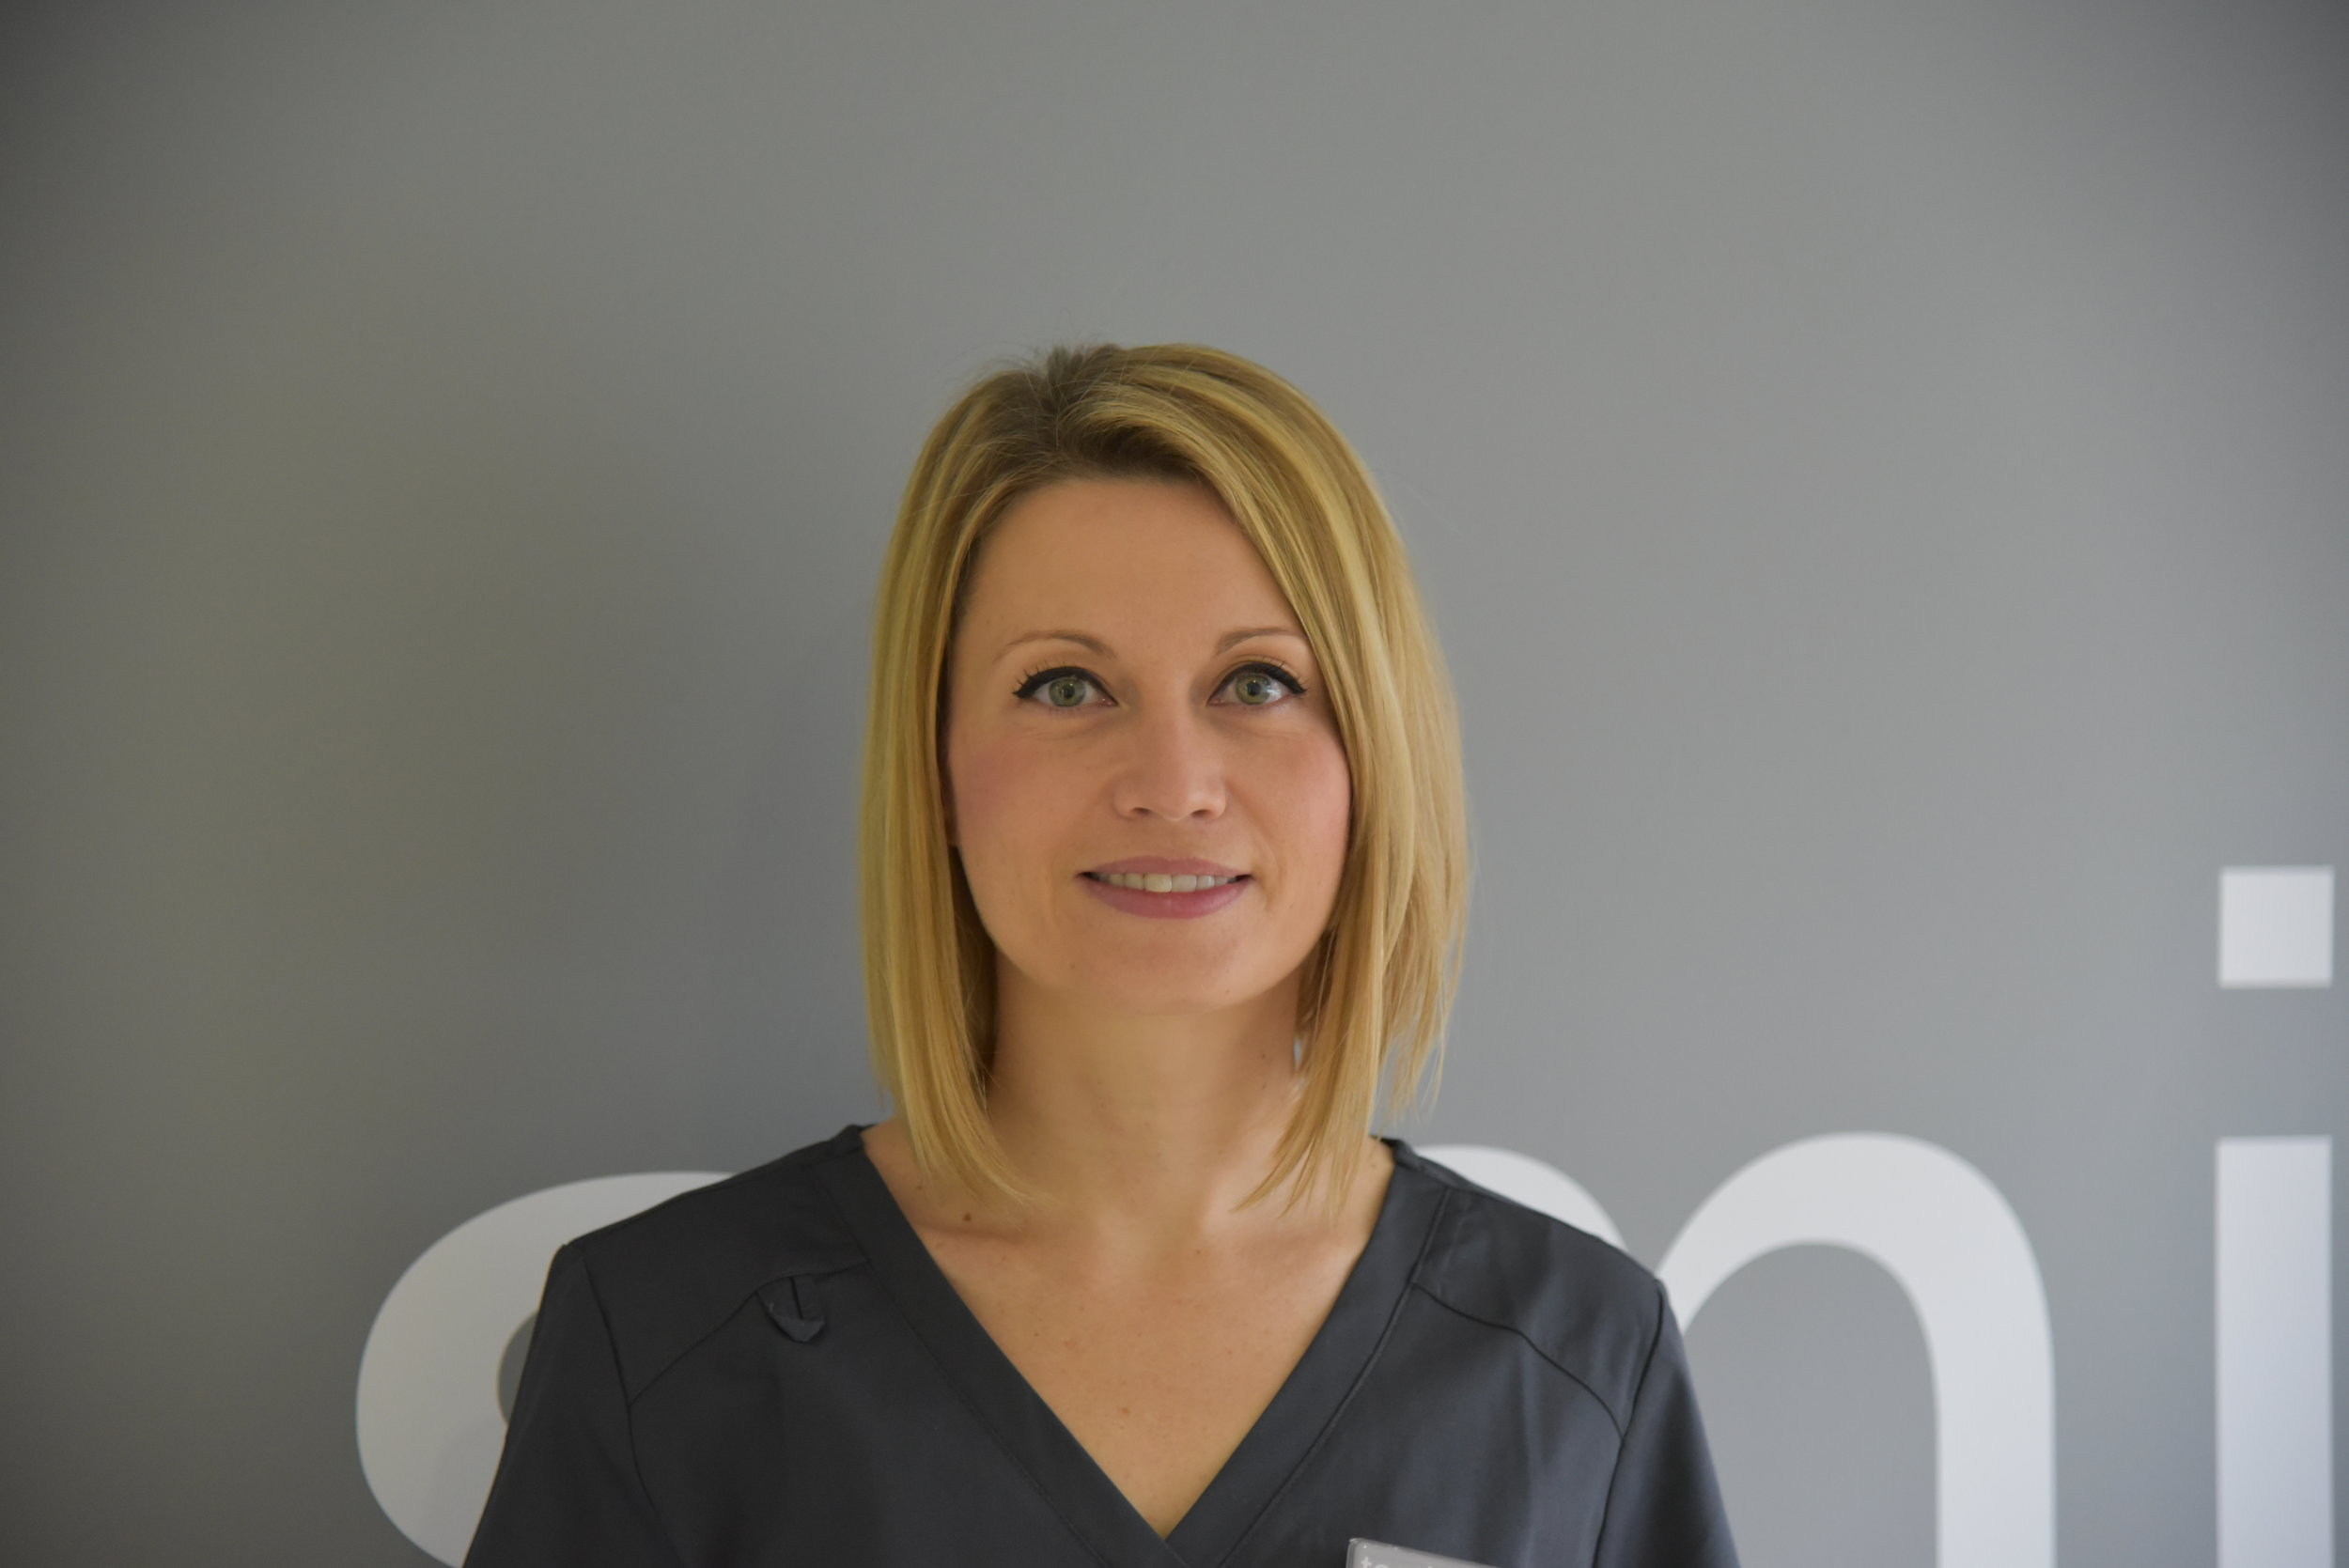 Dr. Ana Krstevska Dentist and Oral Surgeon at tooth dental surgery in Waterloo, London